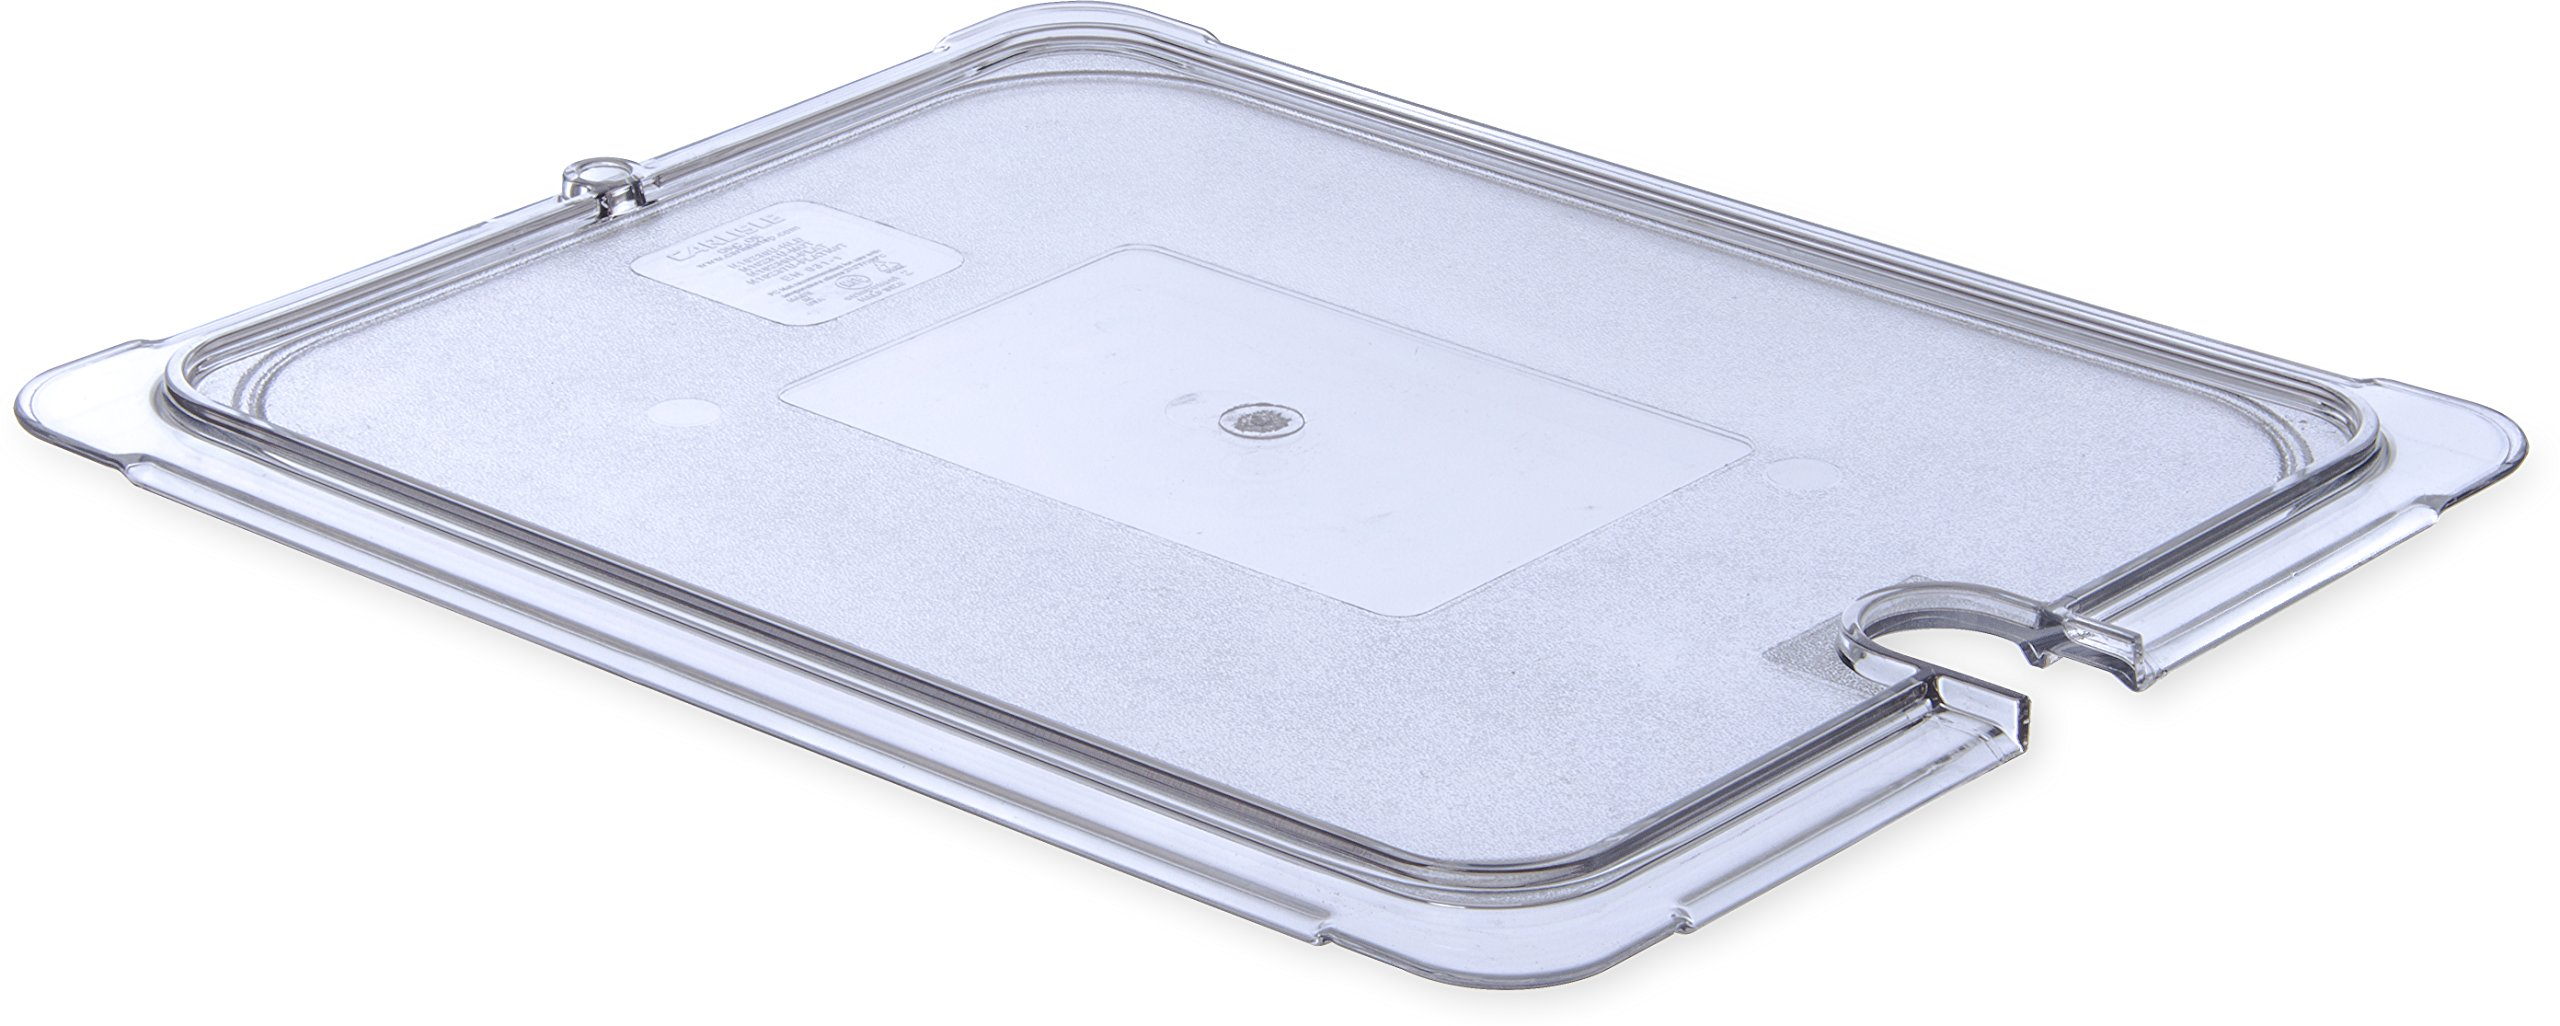 Carlisle 10237U07 Polycarbonate Universal Flat Notched Lid, 12-3/4 x 10-3/8  x 7/16'', Clear, For TopNotch One-Half Size Food Pans (Case of 6)